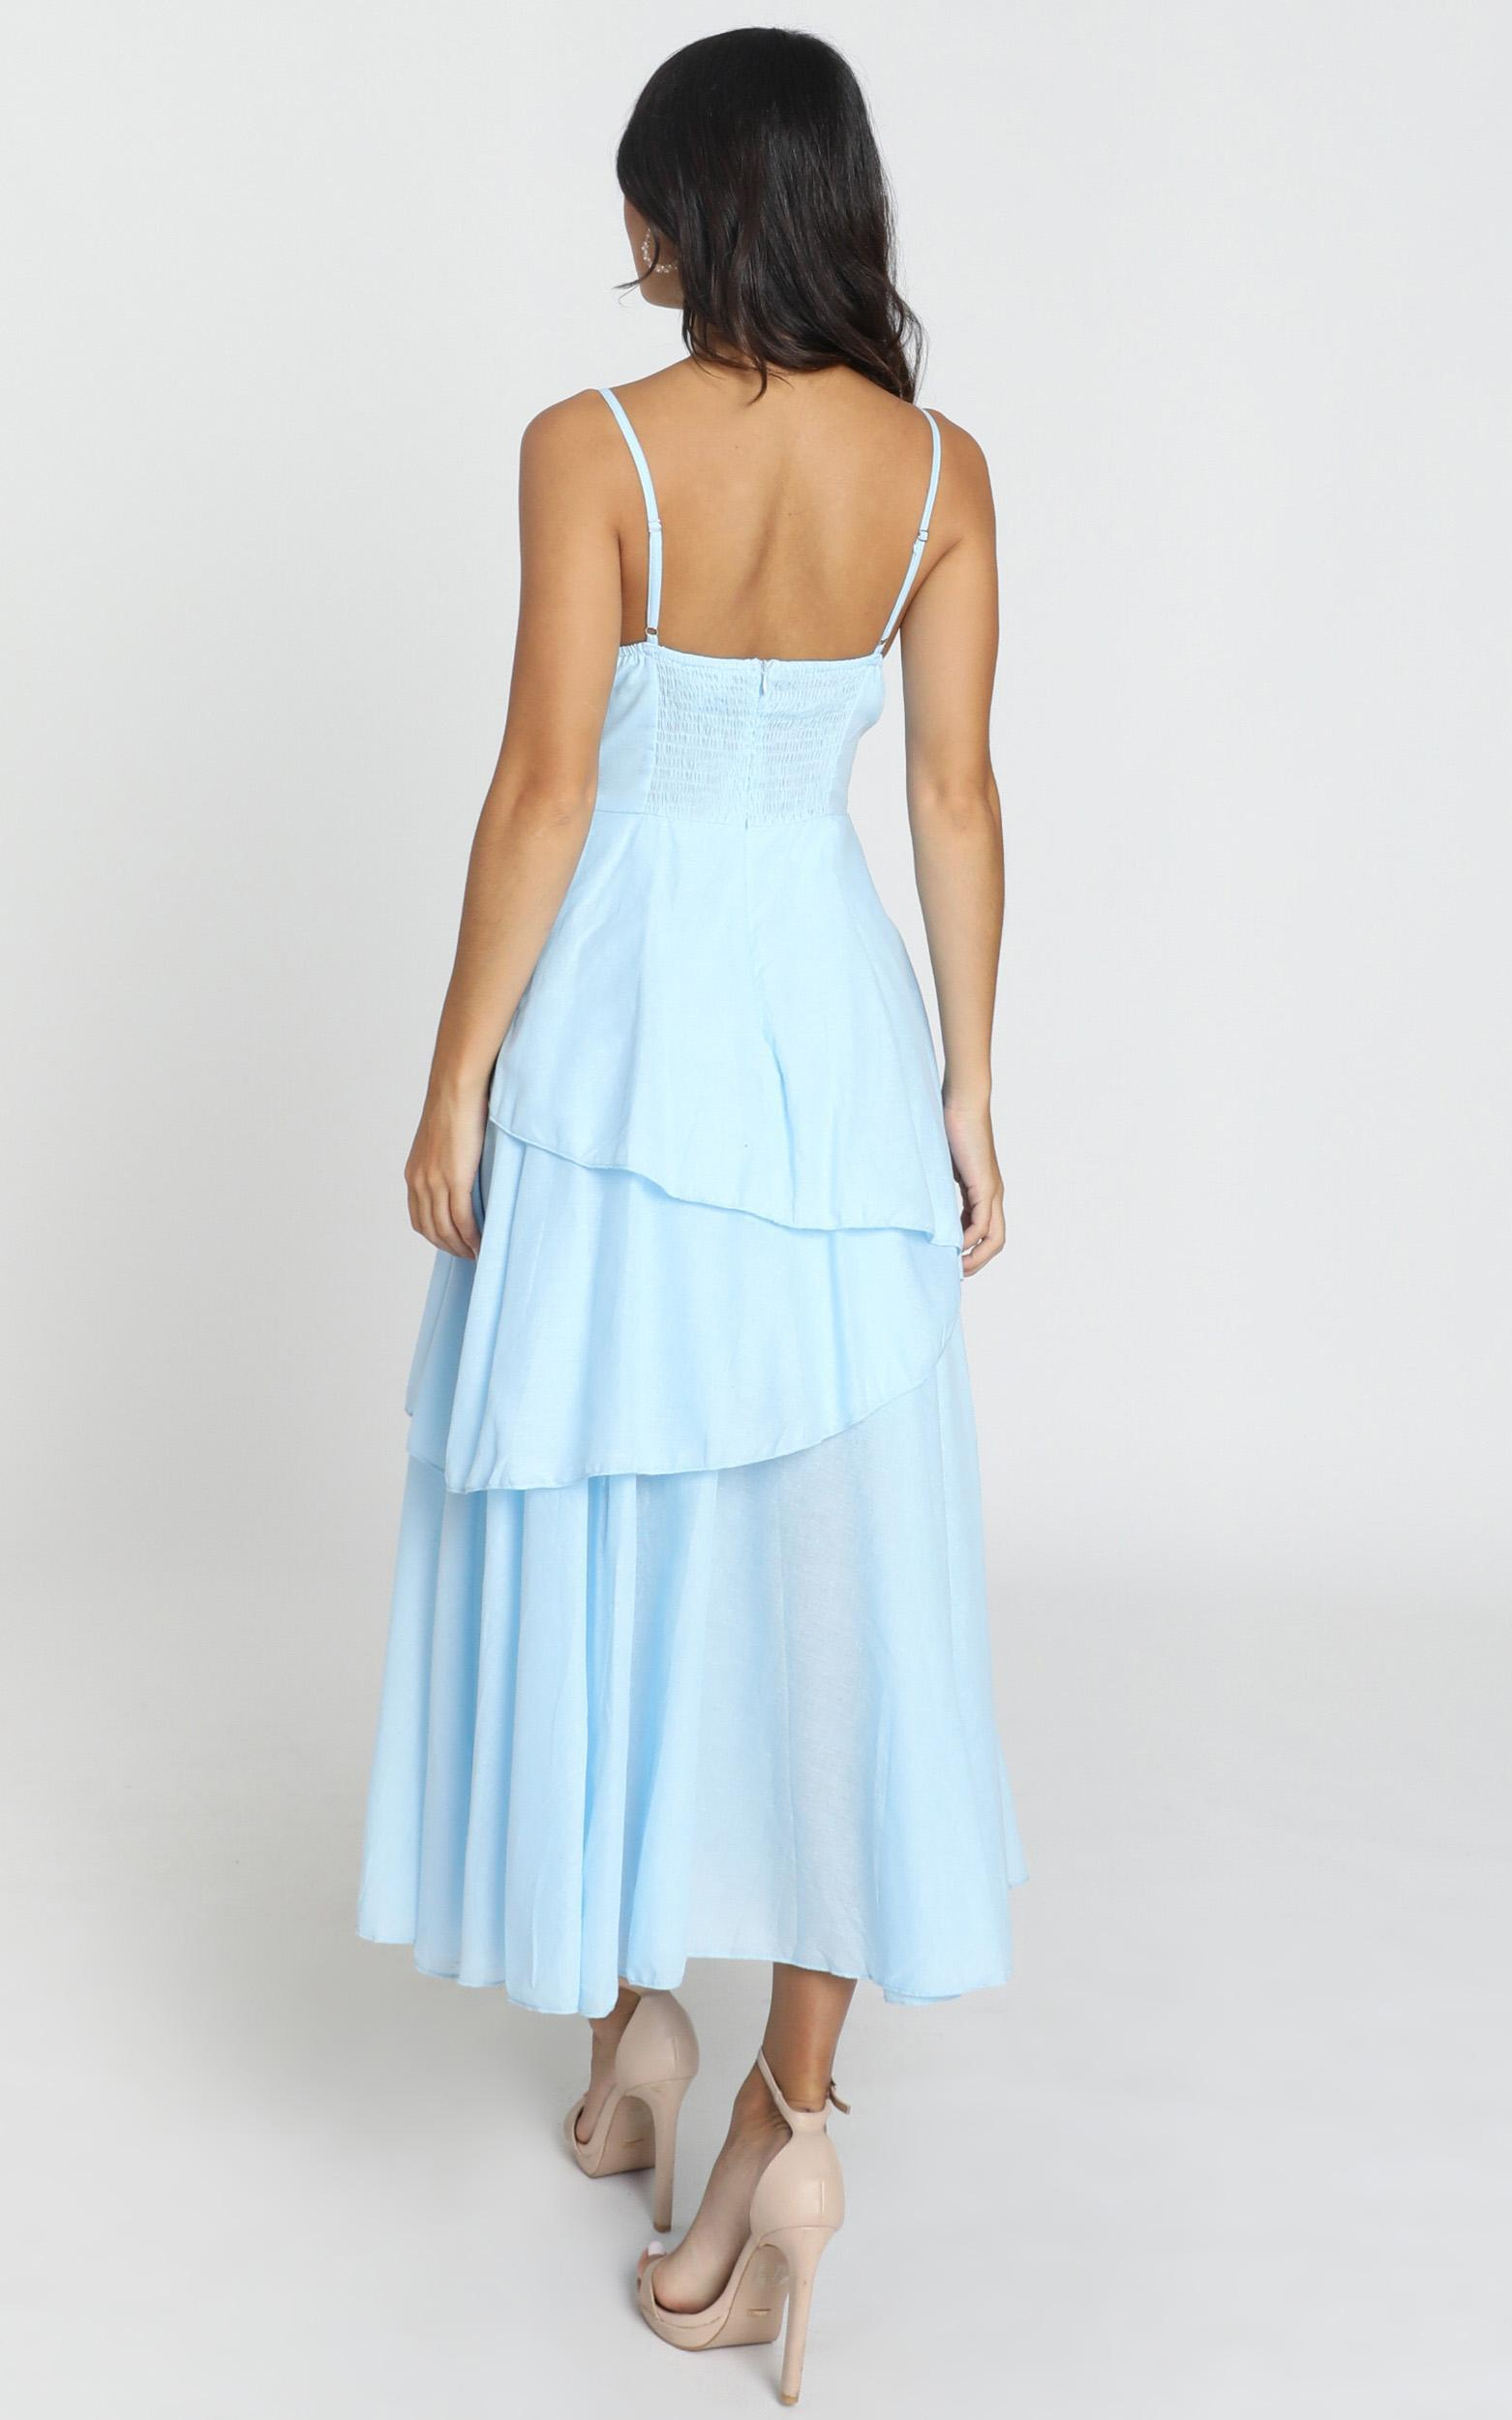 Hibiscus Dress in powder blue - 6 (XS), Blue, hi-res image number null